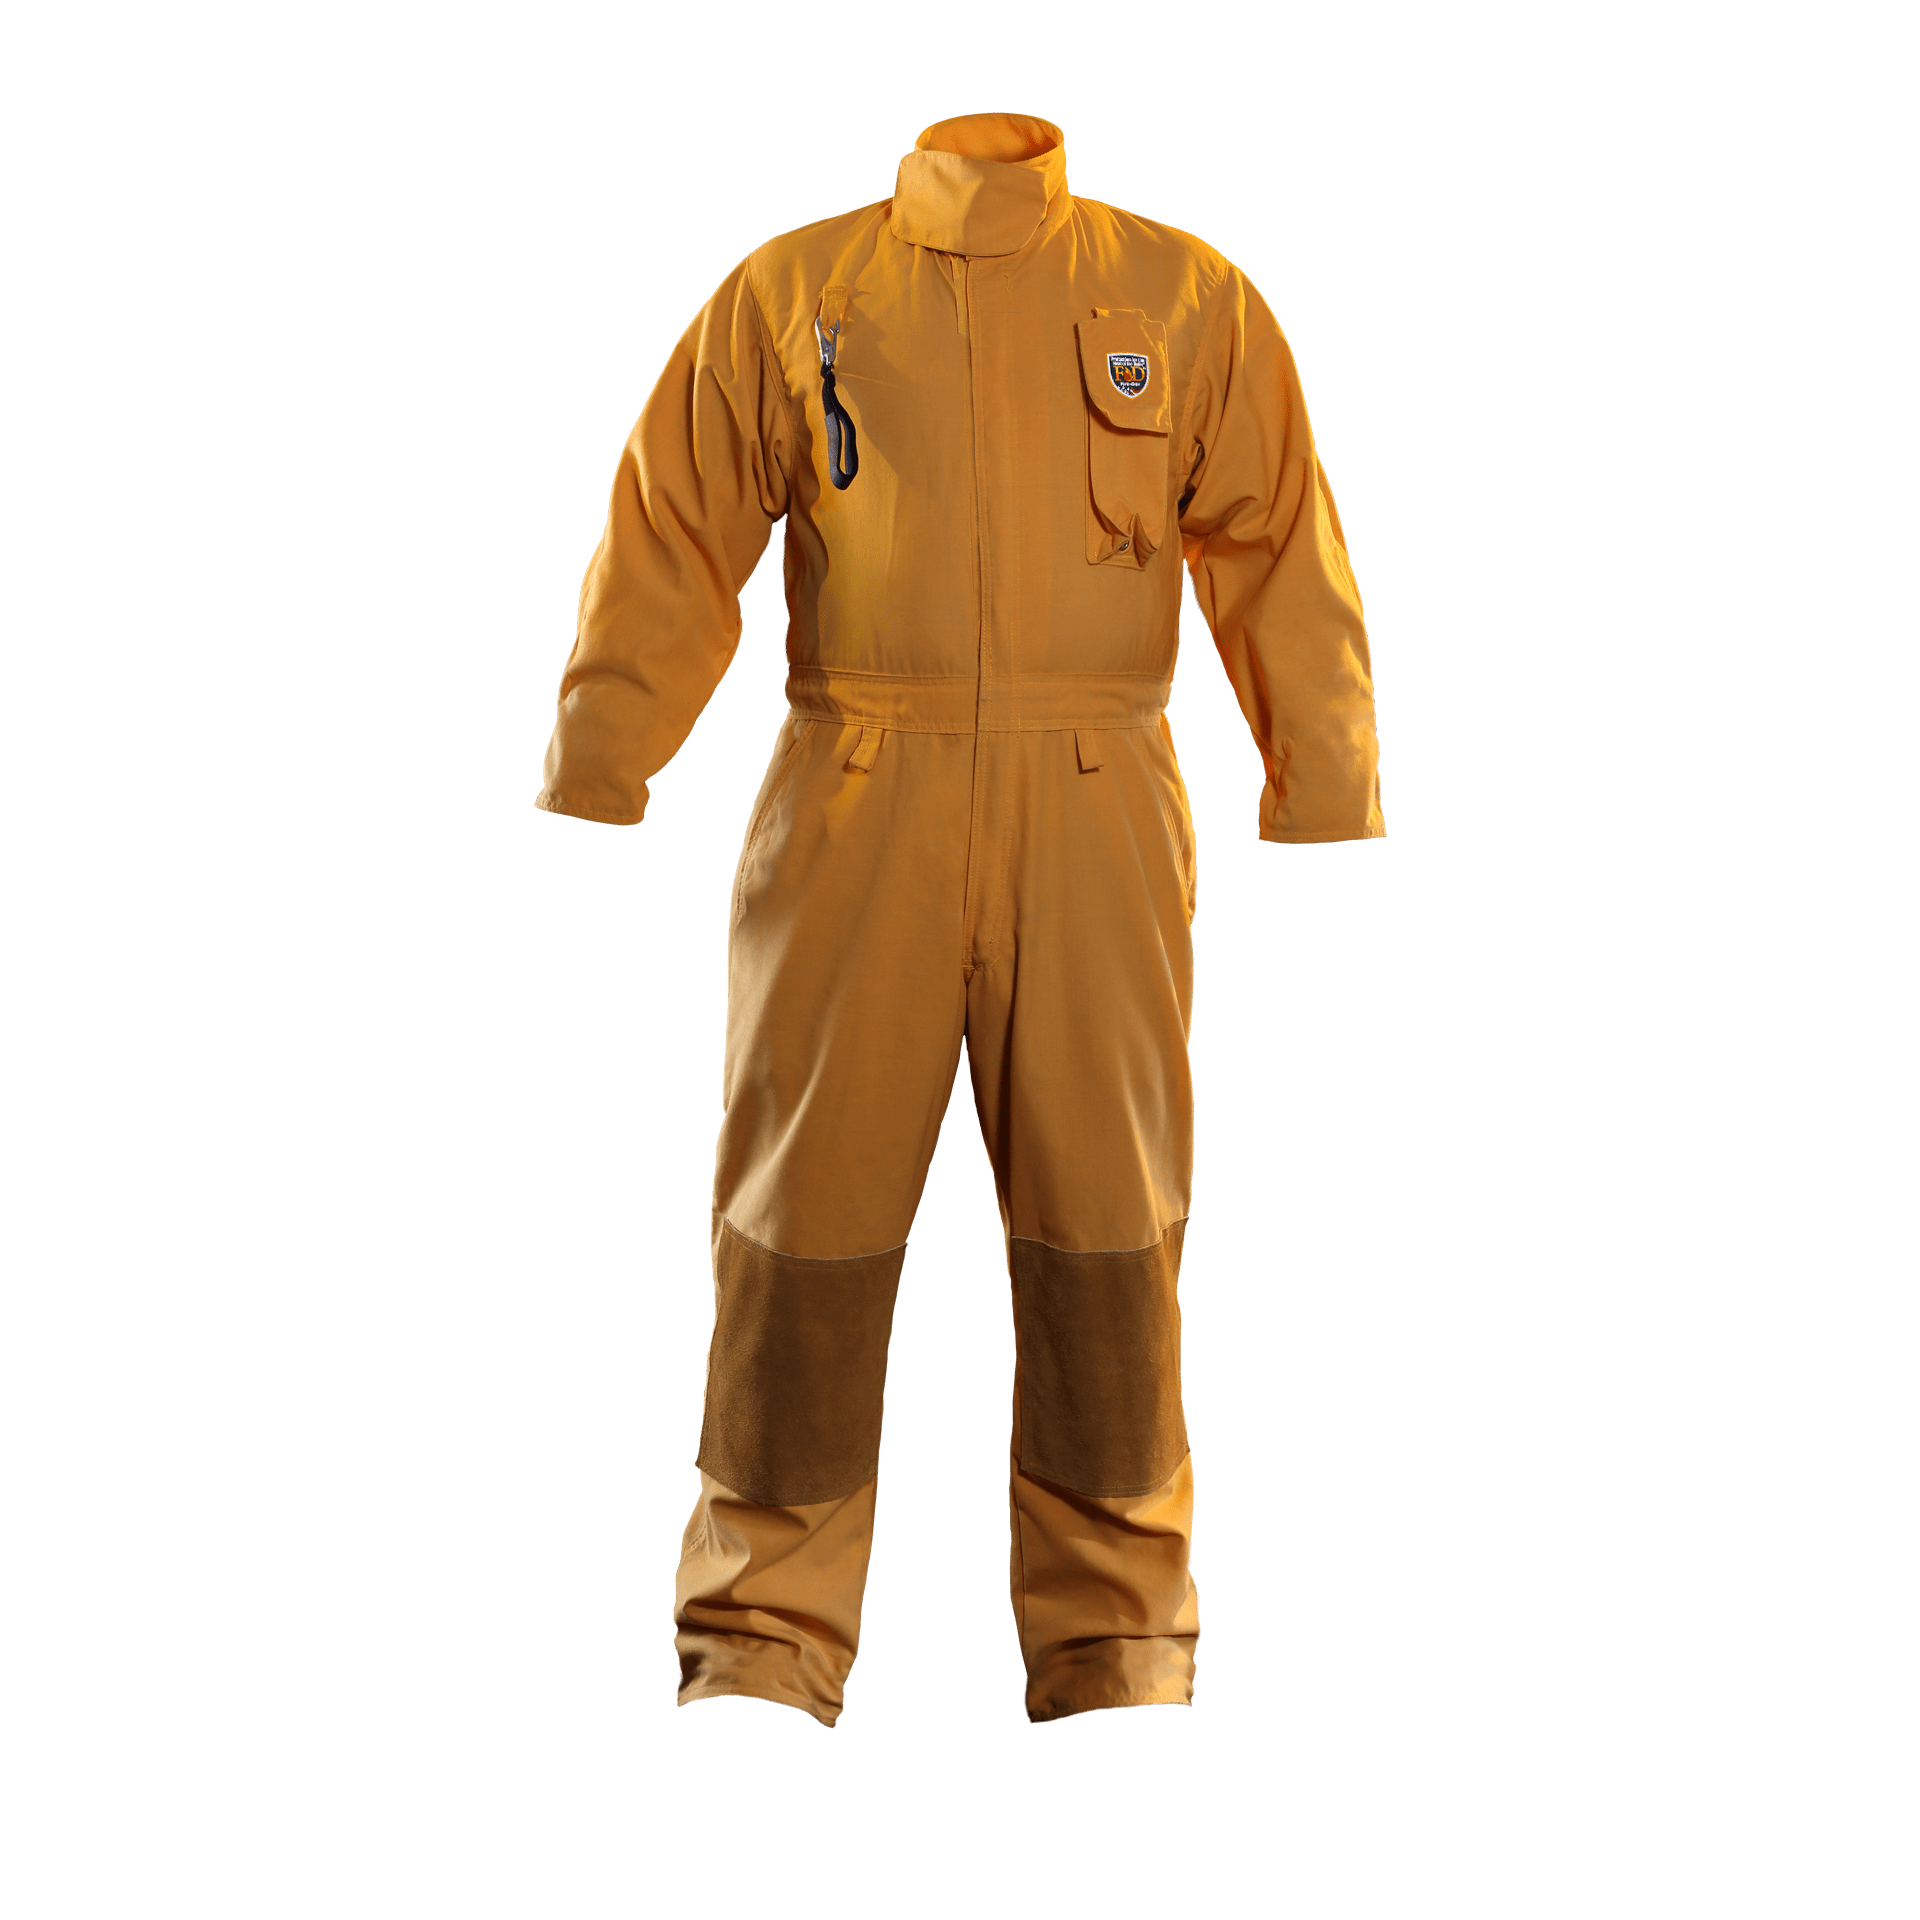 FireDex_AlternativePPE_Wildland_Coverall_FullBodyFront_FDX